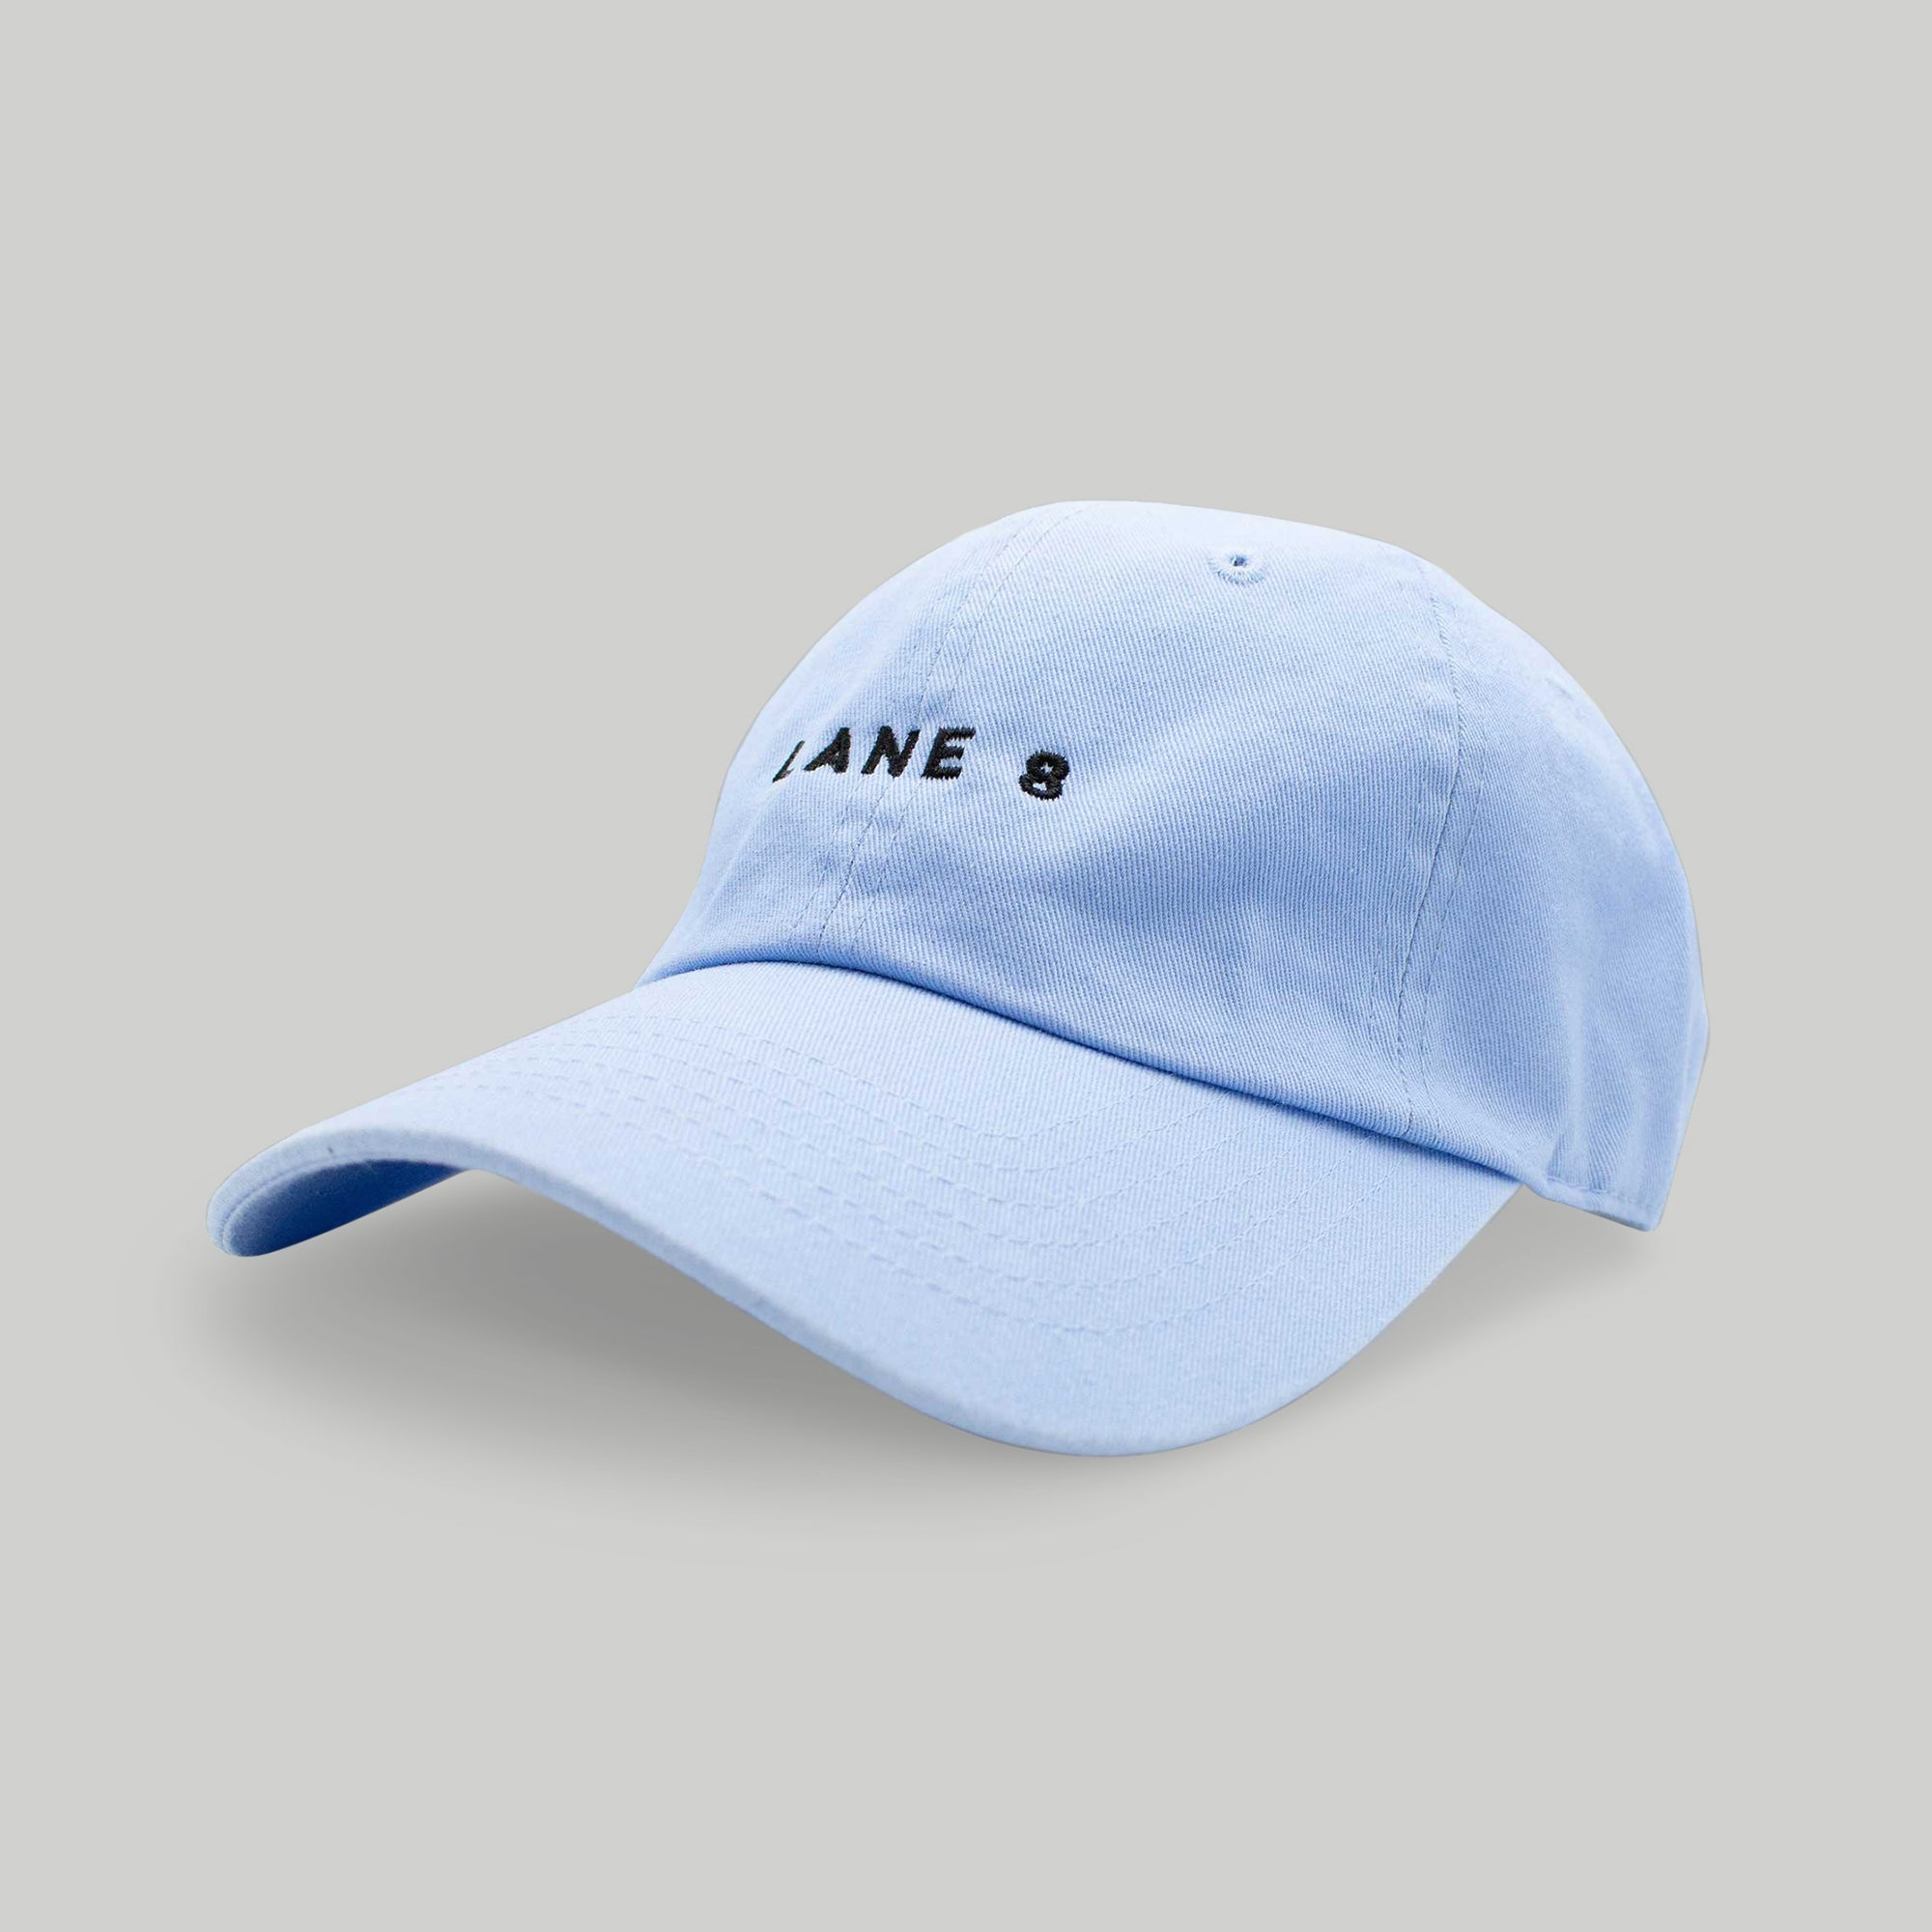 Lane 8 Dad Hat - Blue